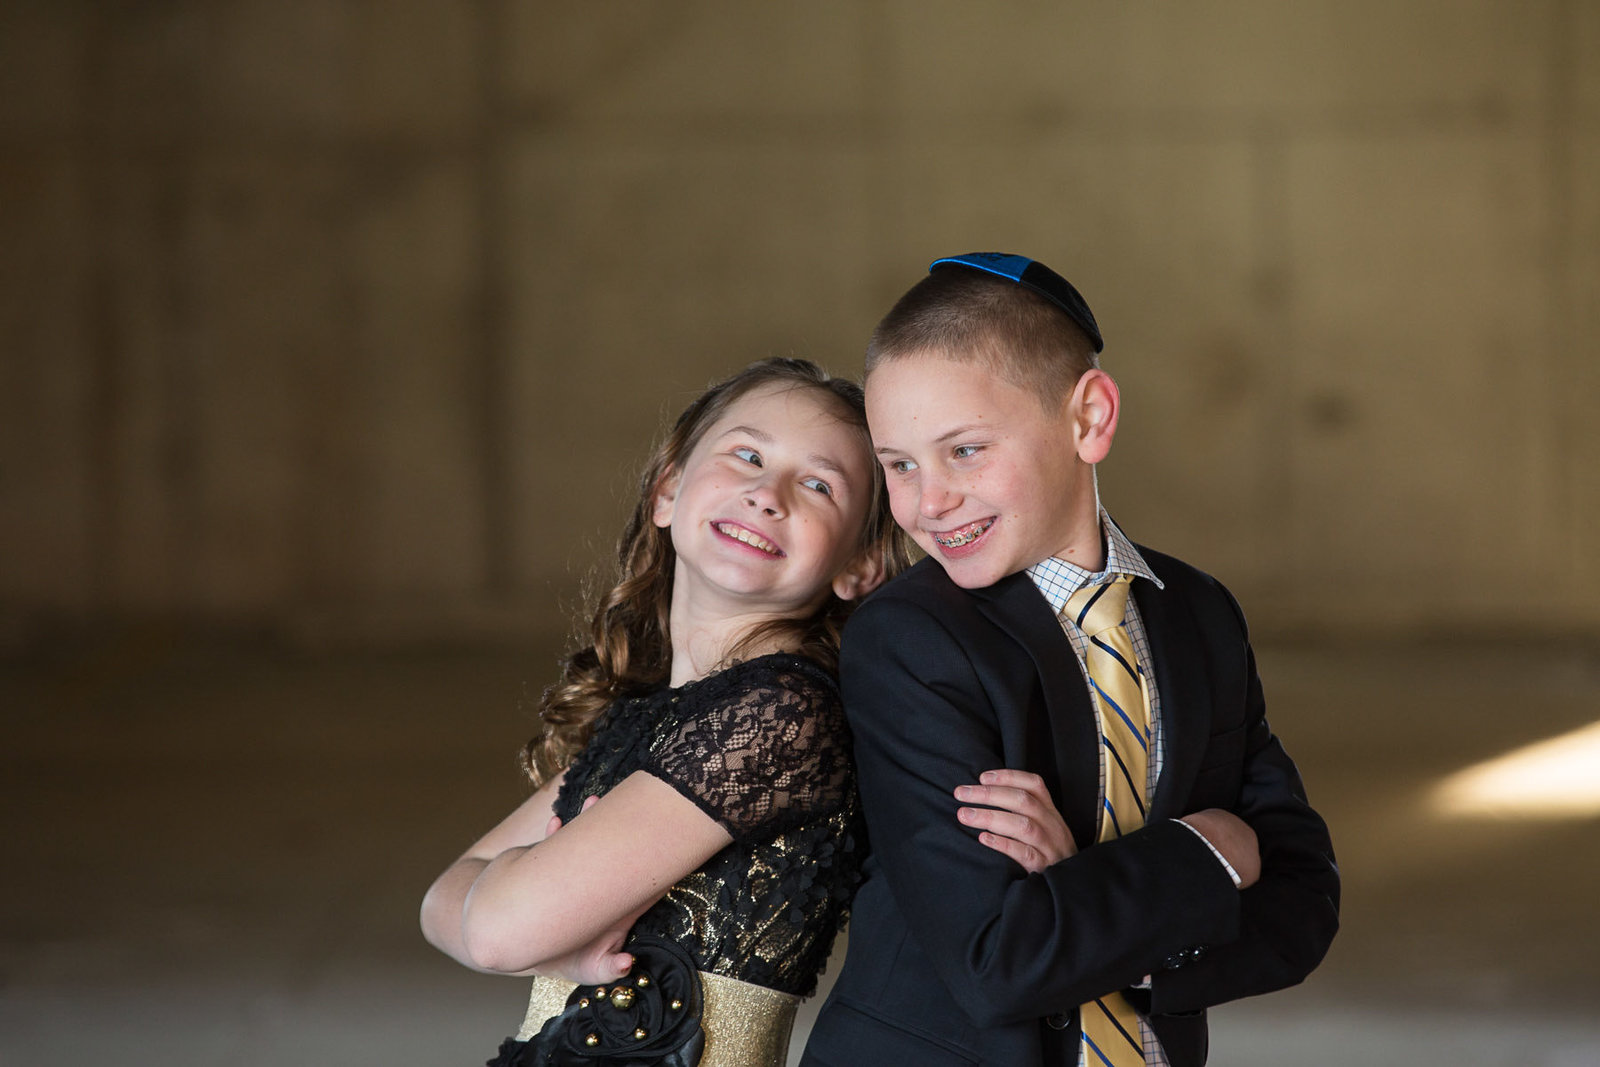 Jewish-Bar-Bat-Mitzvah-Event-Photography-20150111-1638